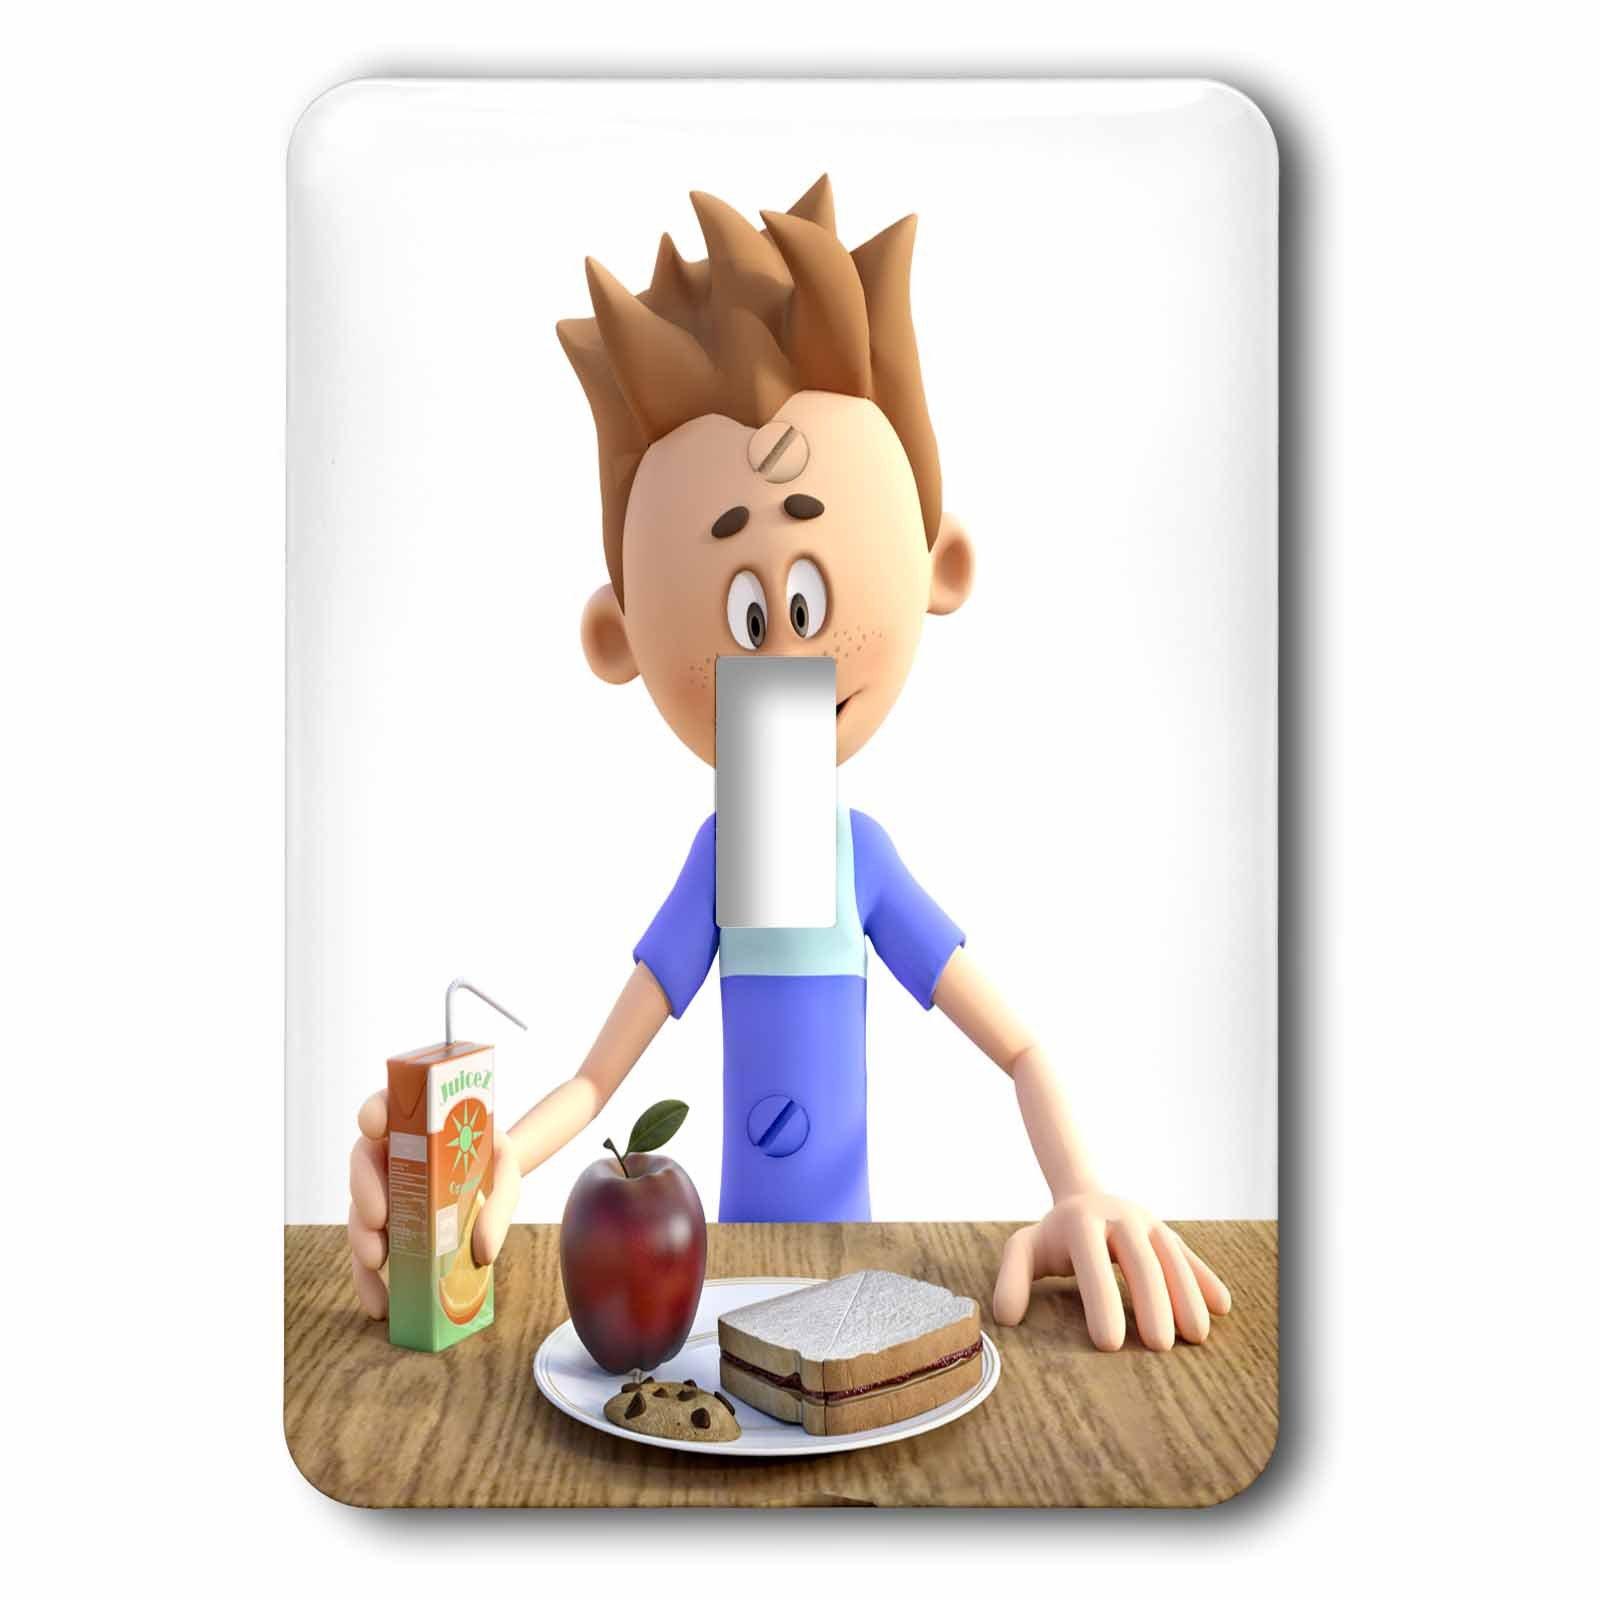 3dRose Boehm Graphics Cartoon - A Cartoon Boy with His School Lunch - Light Switch Covers - single toggle switch (lsp_282397_1)